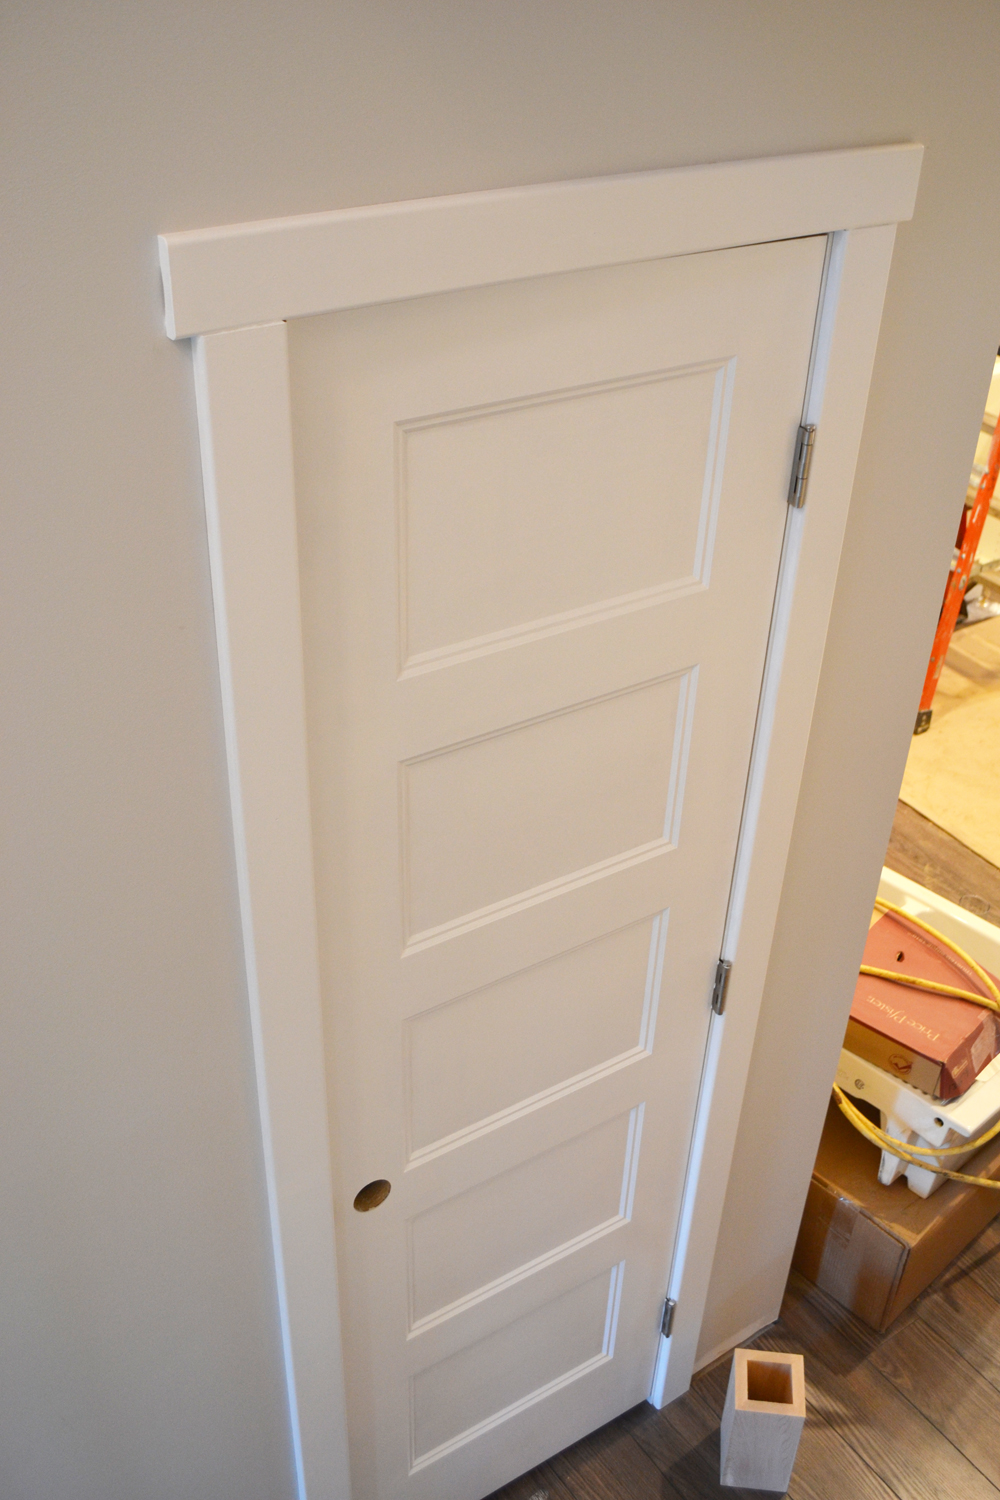 Painting Doors With A Streak Free Finish Where We Found Our Gorgeous Shaker Style Diy House